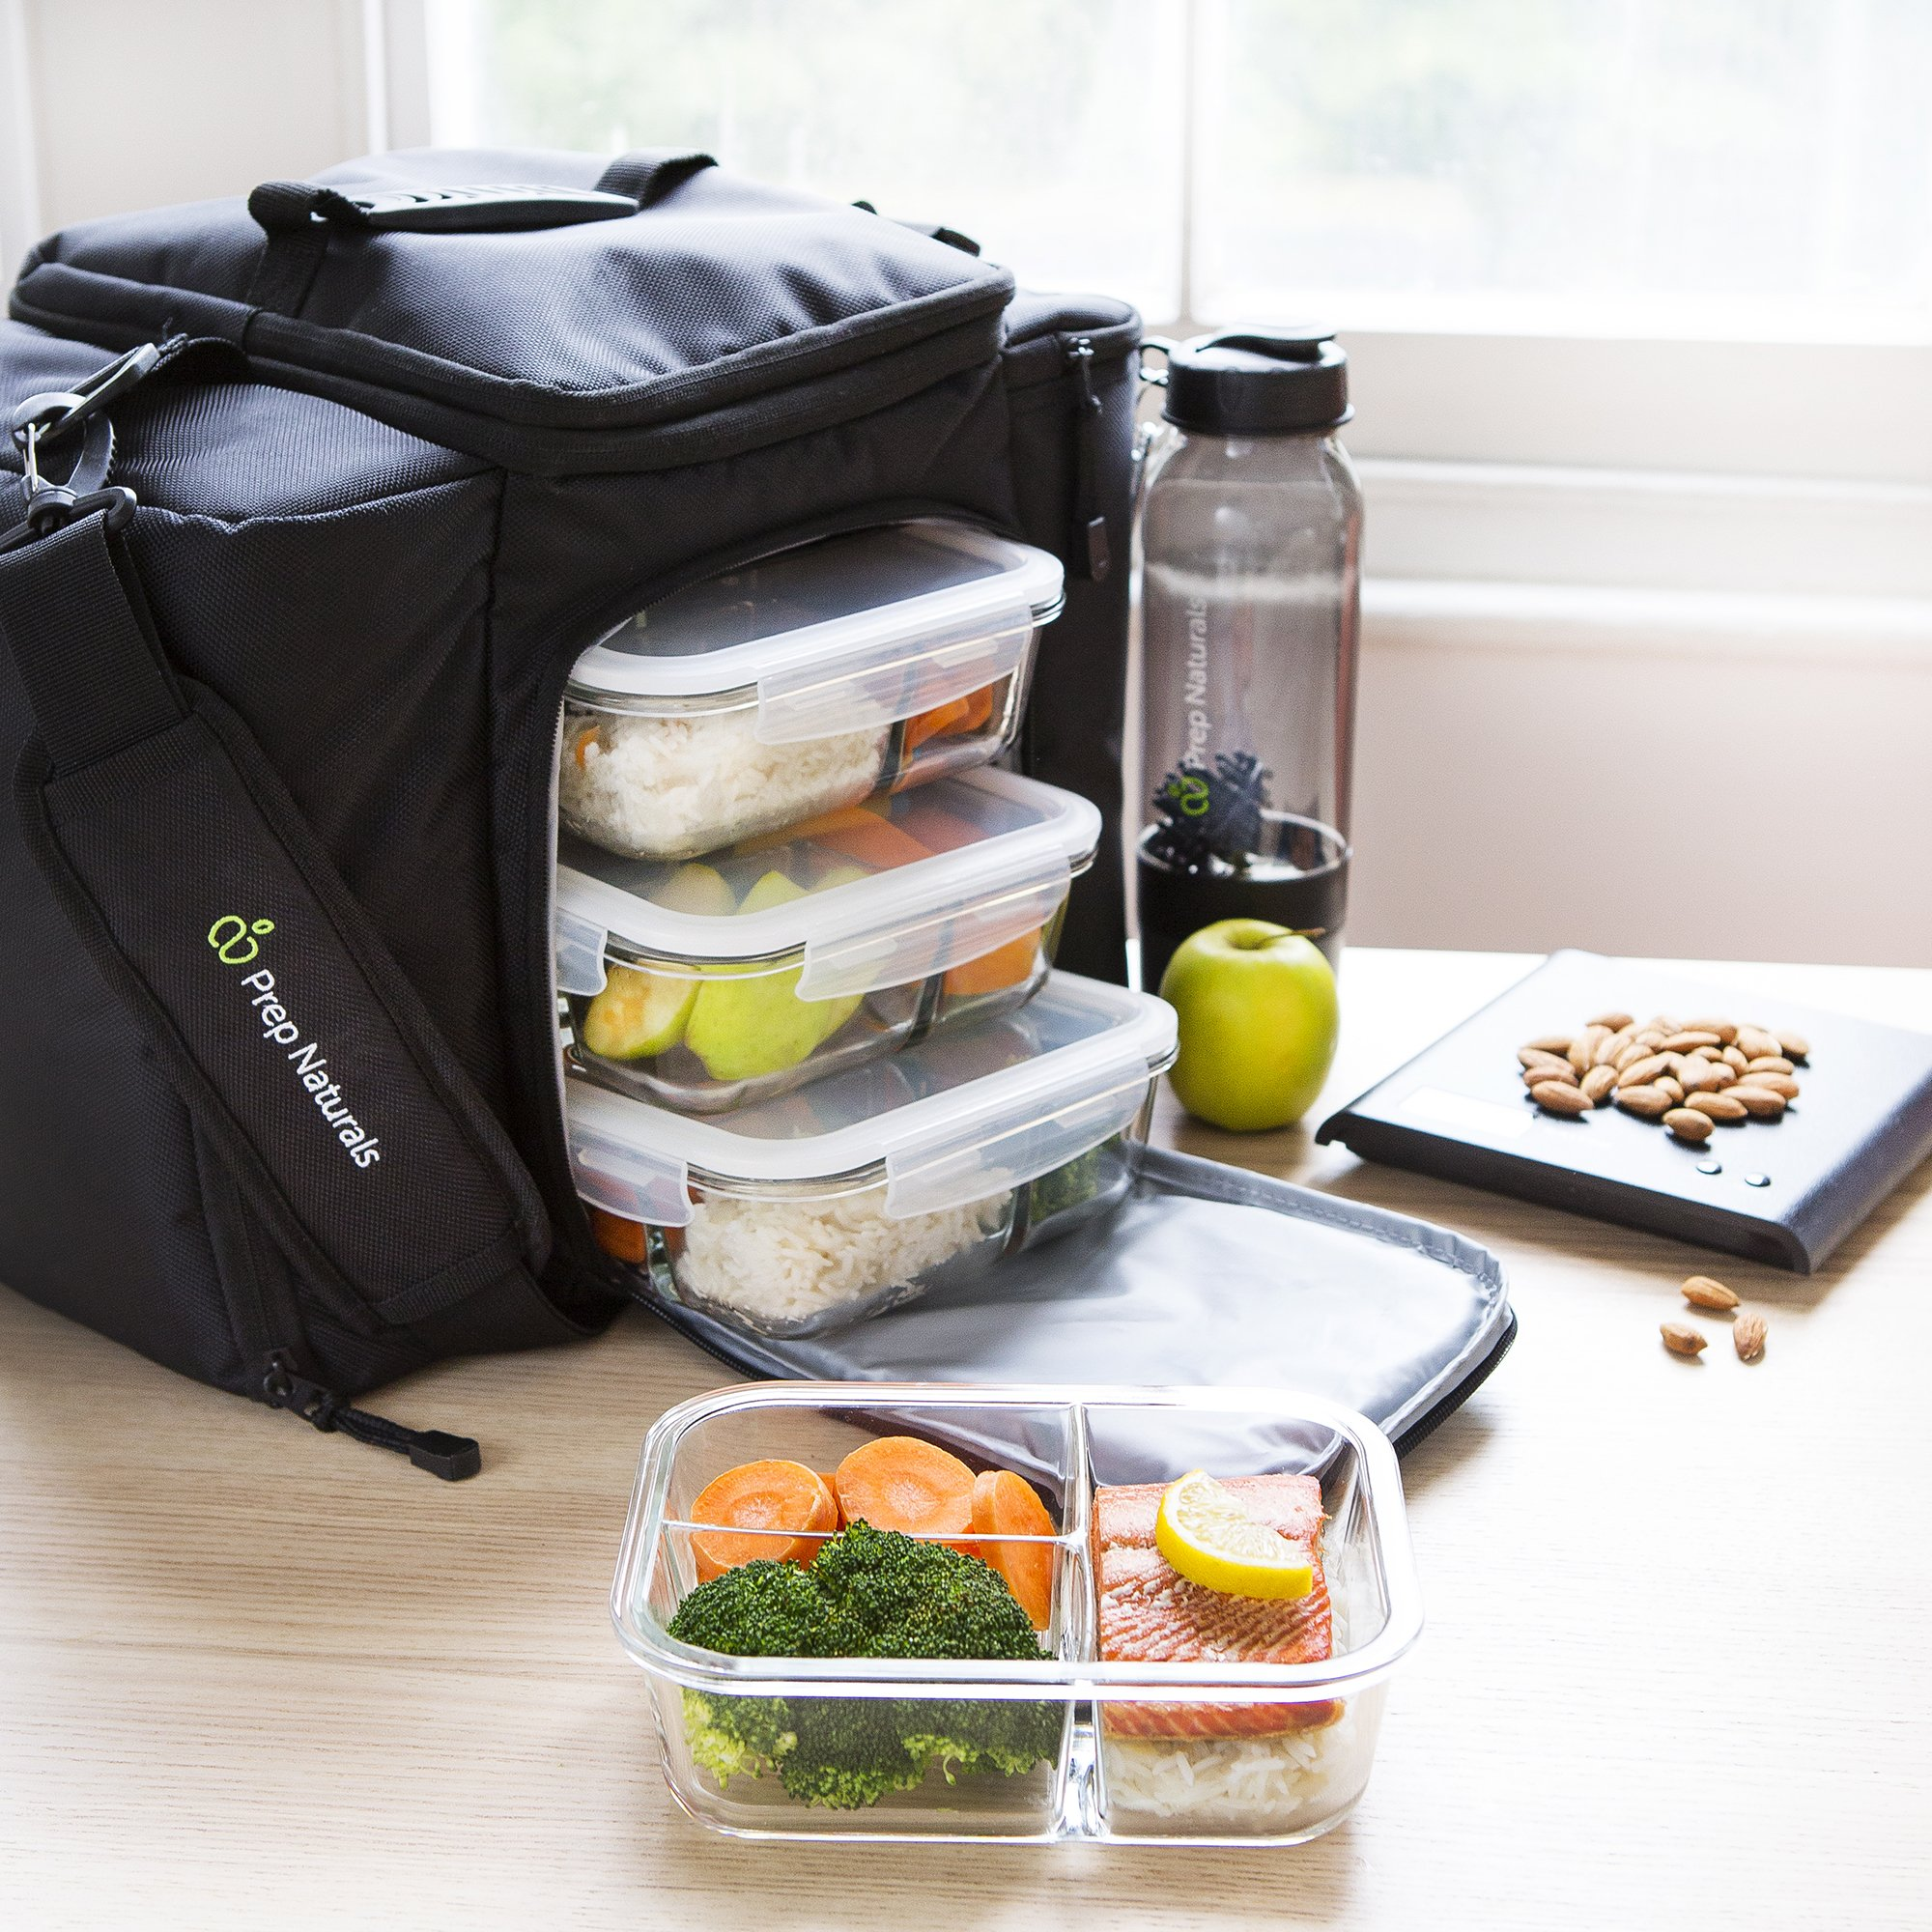 [5-Pack] Glass Meal Prep Containers 3 Compartment - Bento Box Containers Glass Food Storage Containers with Lids - Food Prep Containers Glass Storage Containers with lids Lunch Containers by Prep Naturals (Image #7)